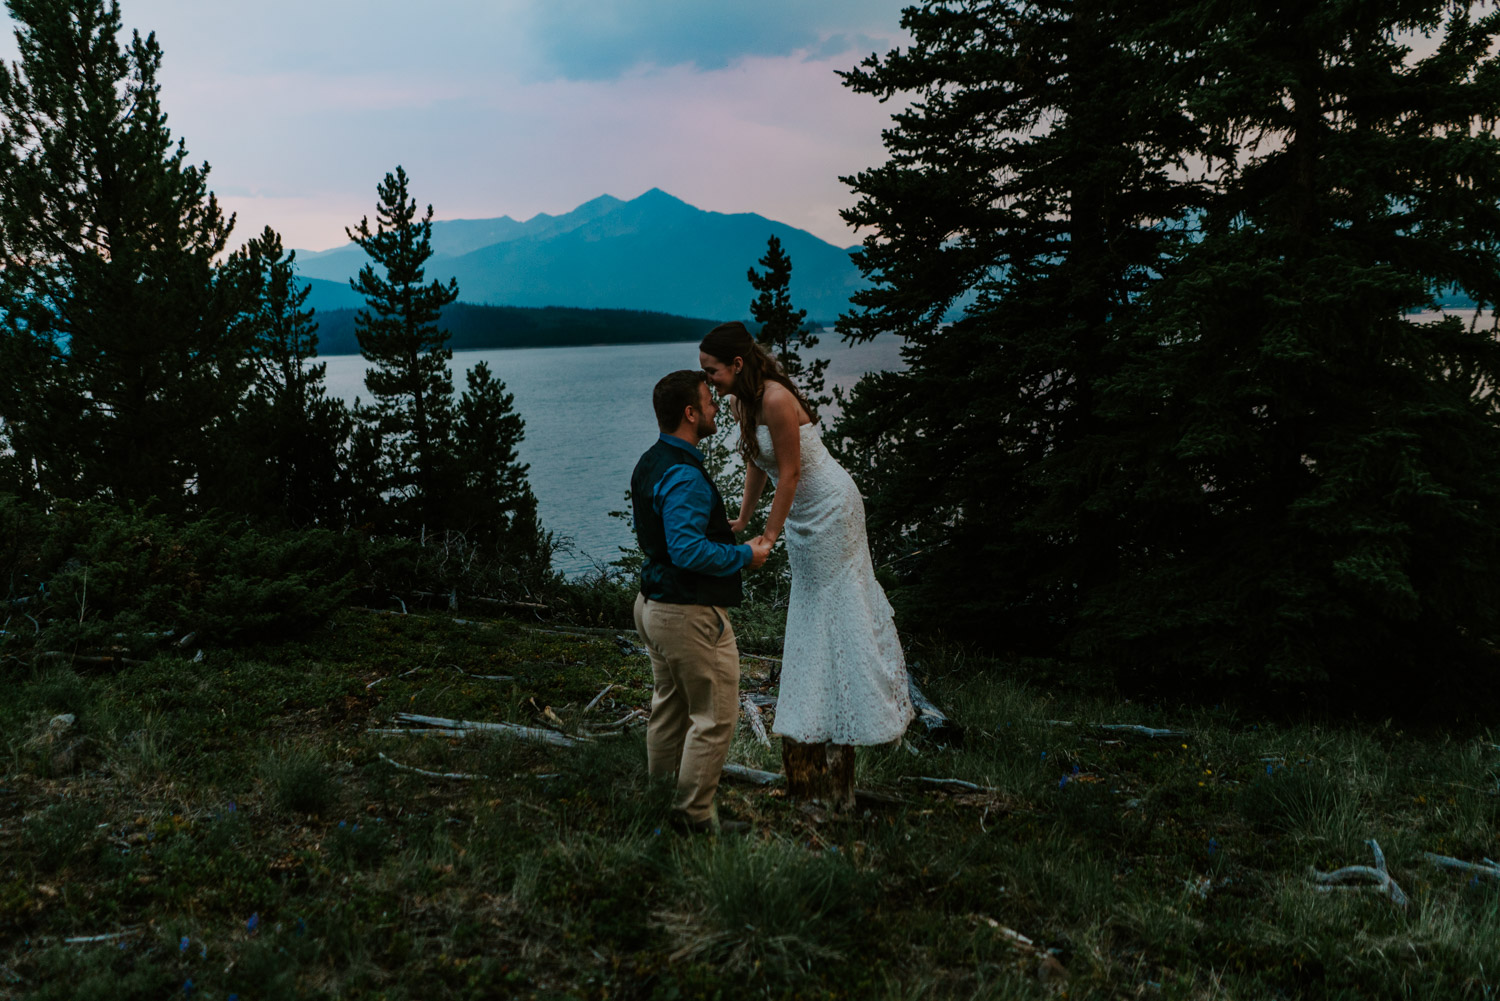 Beth_Jeff_Colorado_Wedding_MegONeillPhotography__180721_129